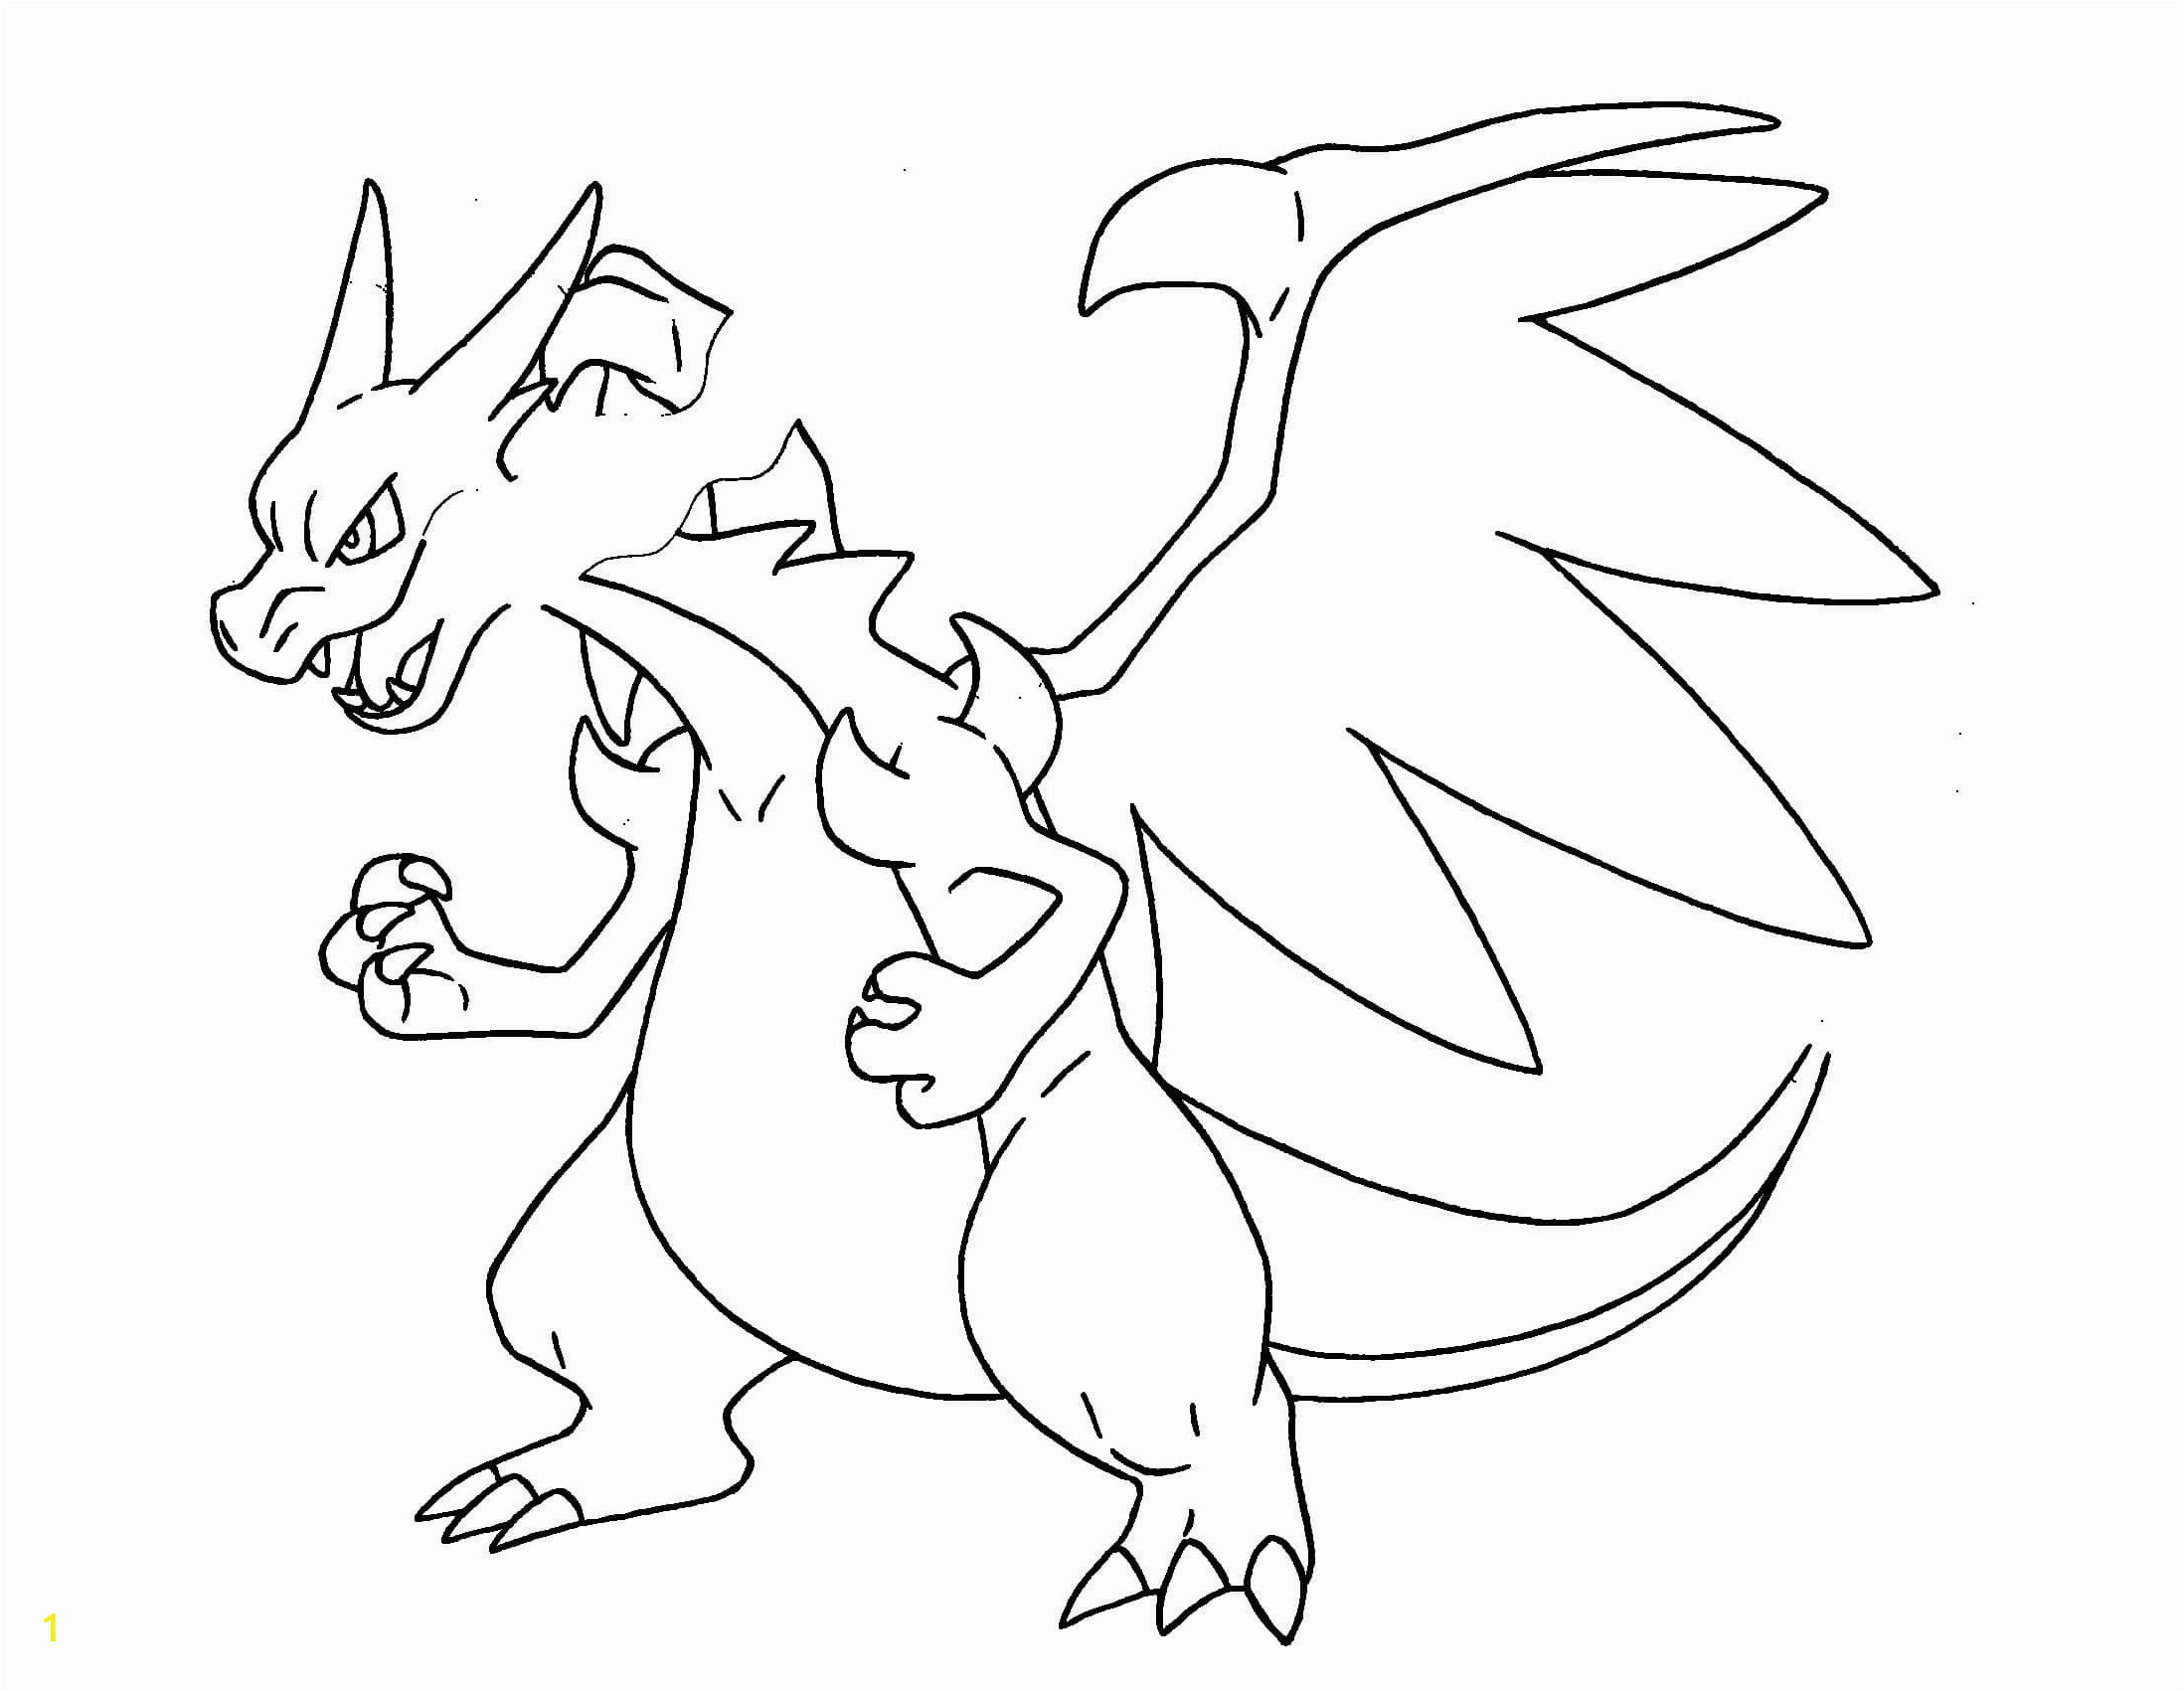 mega charizard ex coloring page unique collection pokemon ex coloring pages through the thousands of images on the of mega charizard ex coloring page